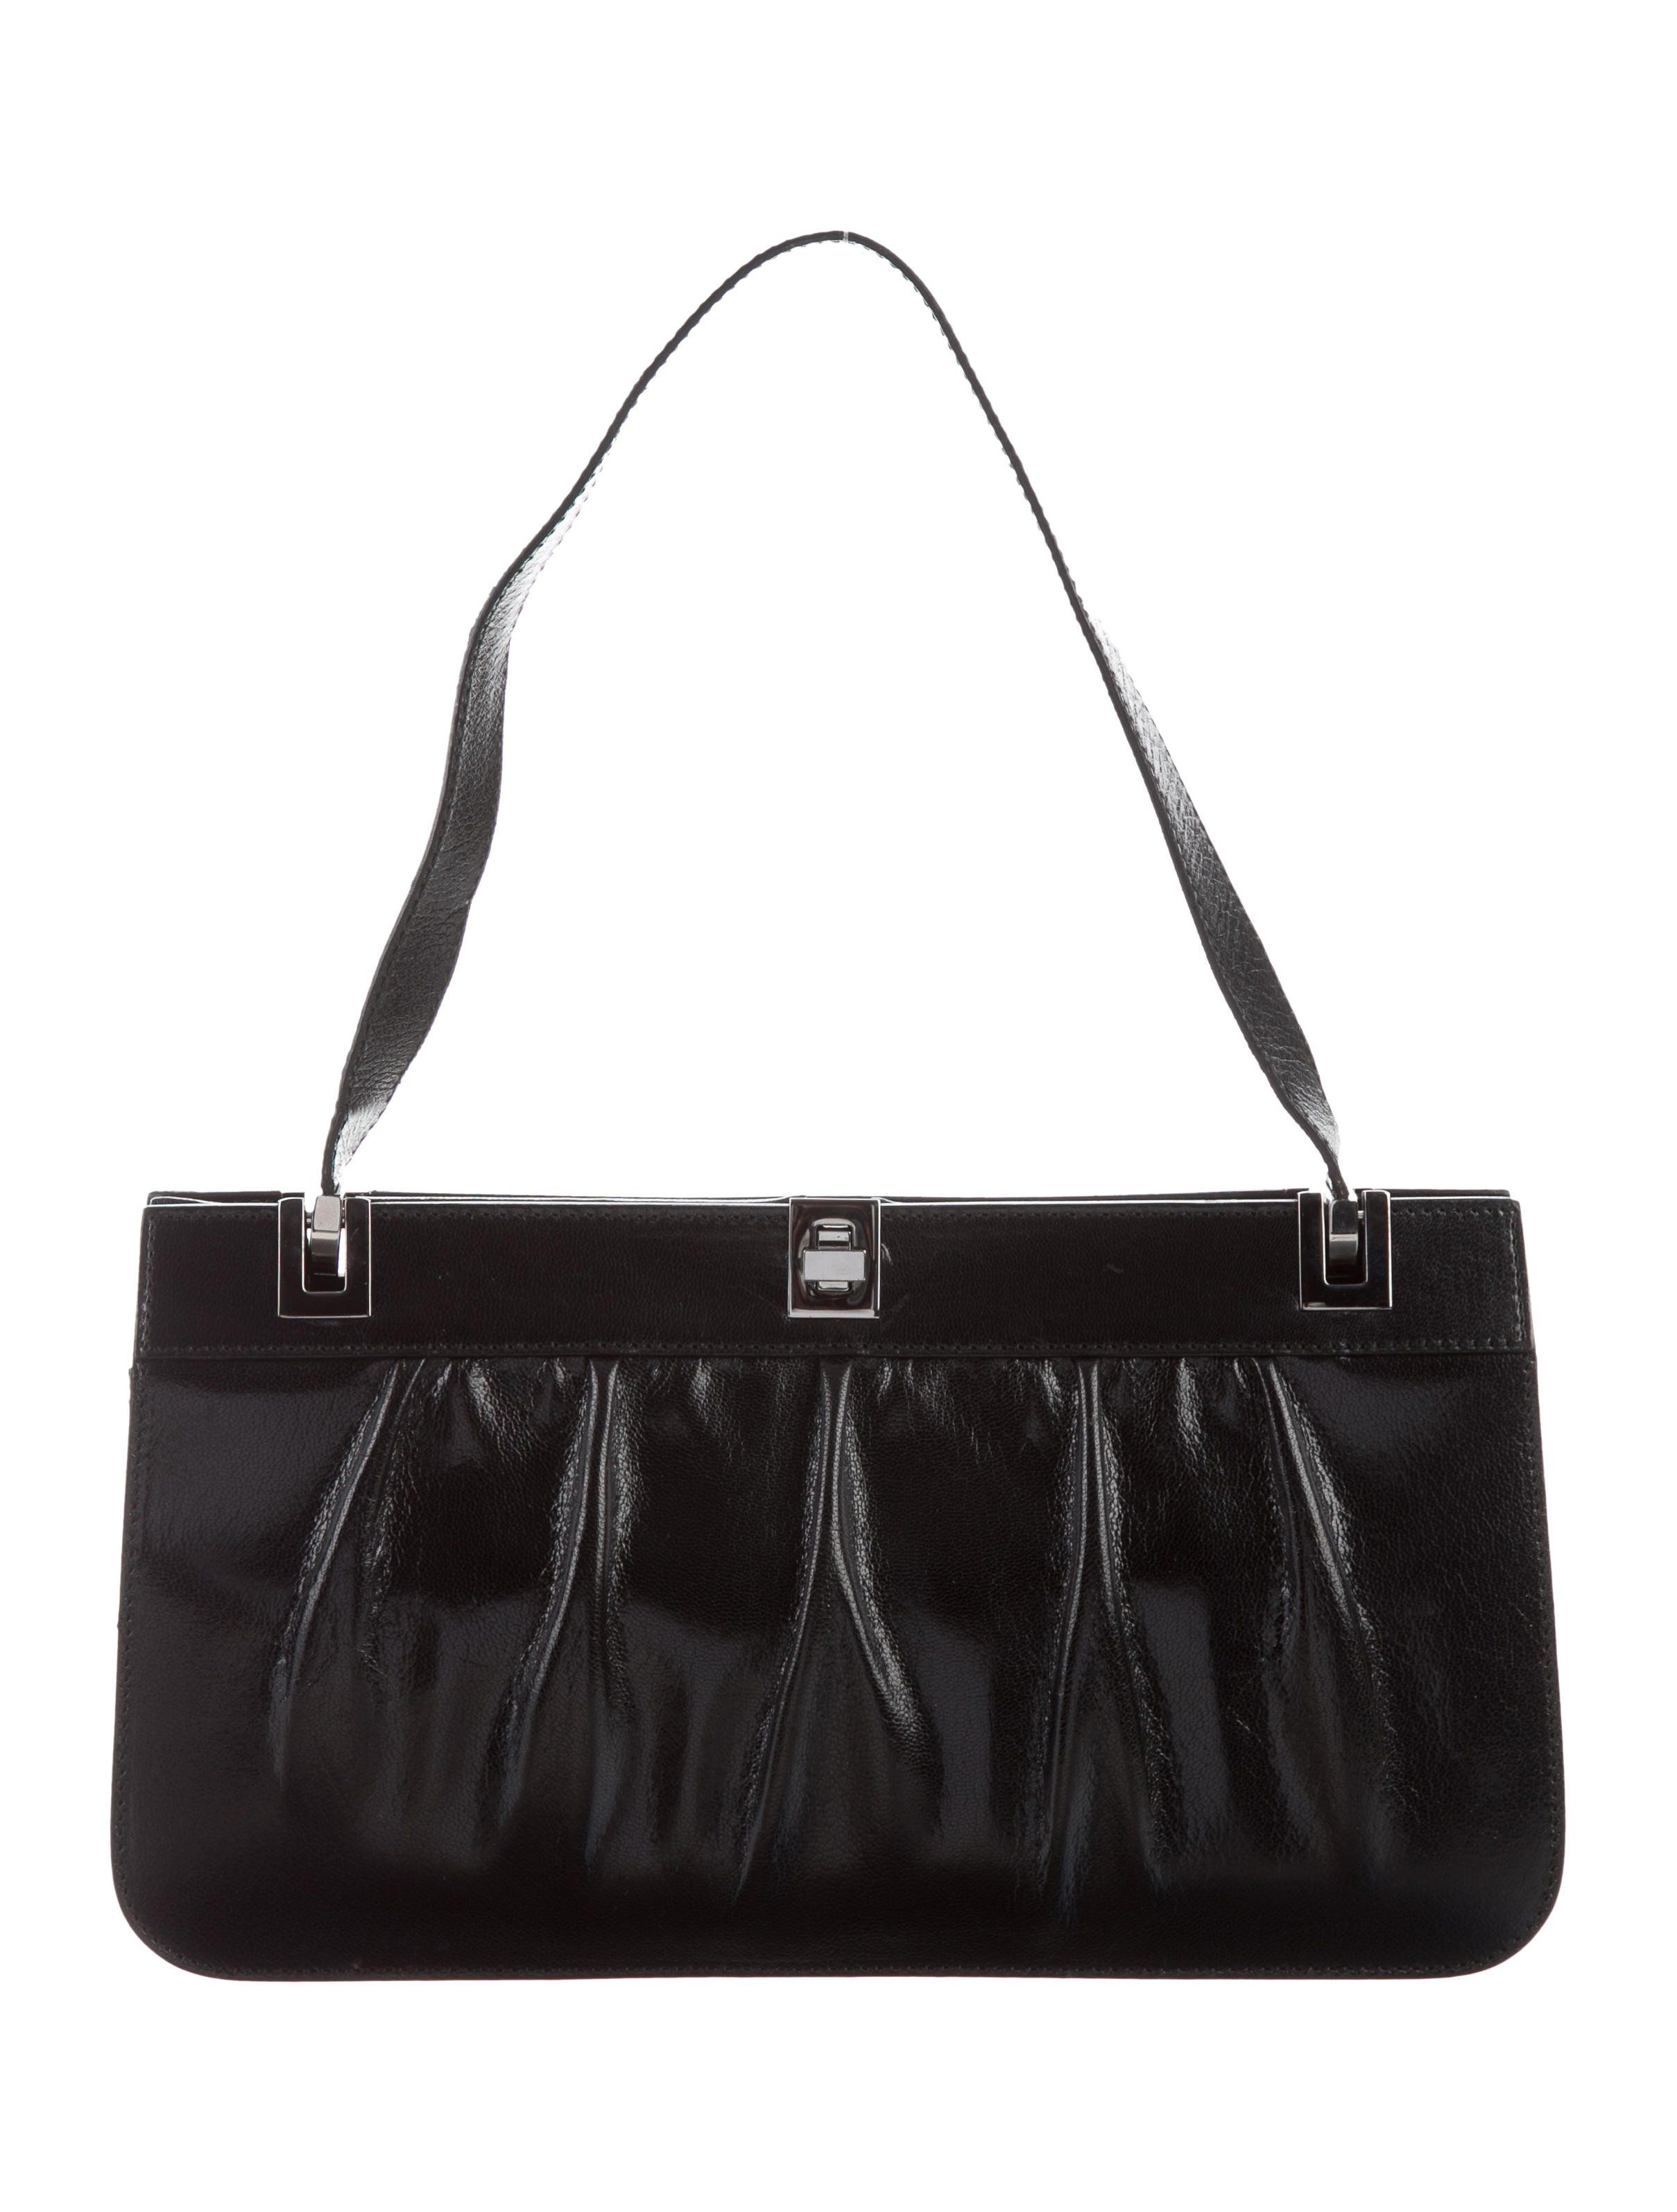 Lyst - Marc Jacobs Pretty Cosmo Shoulder Bag in White